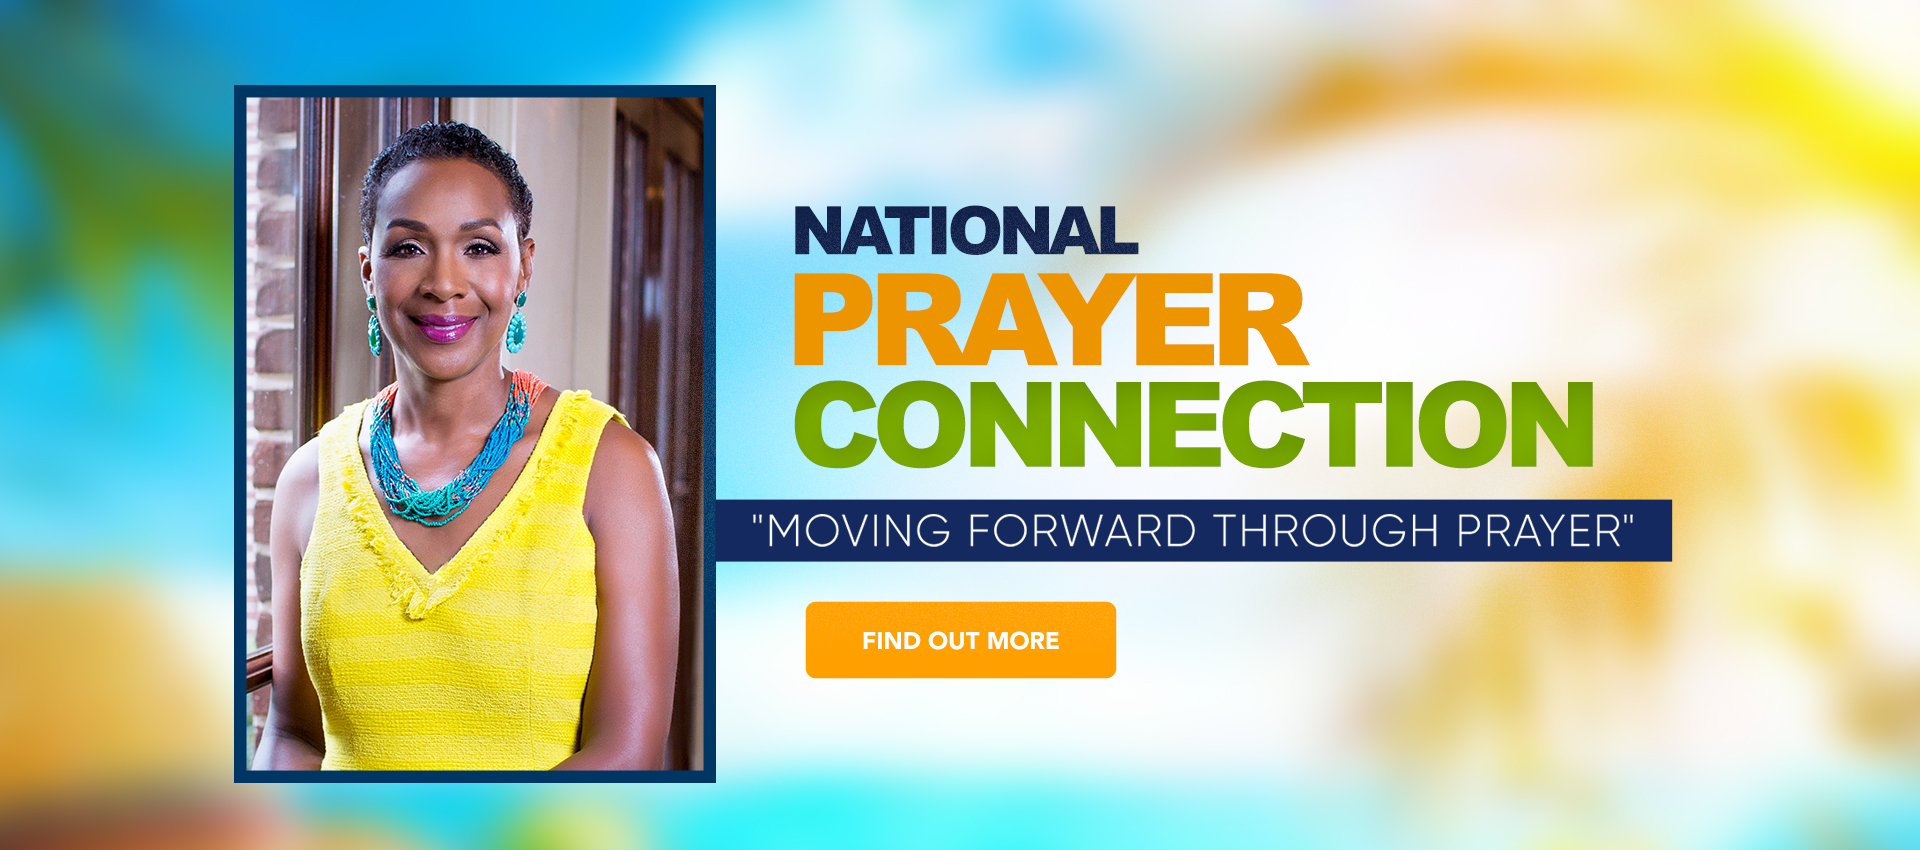 National Prayer Connection